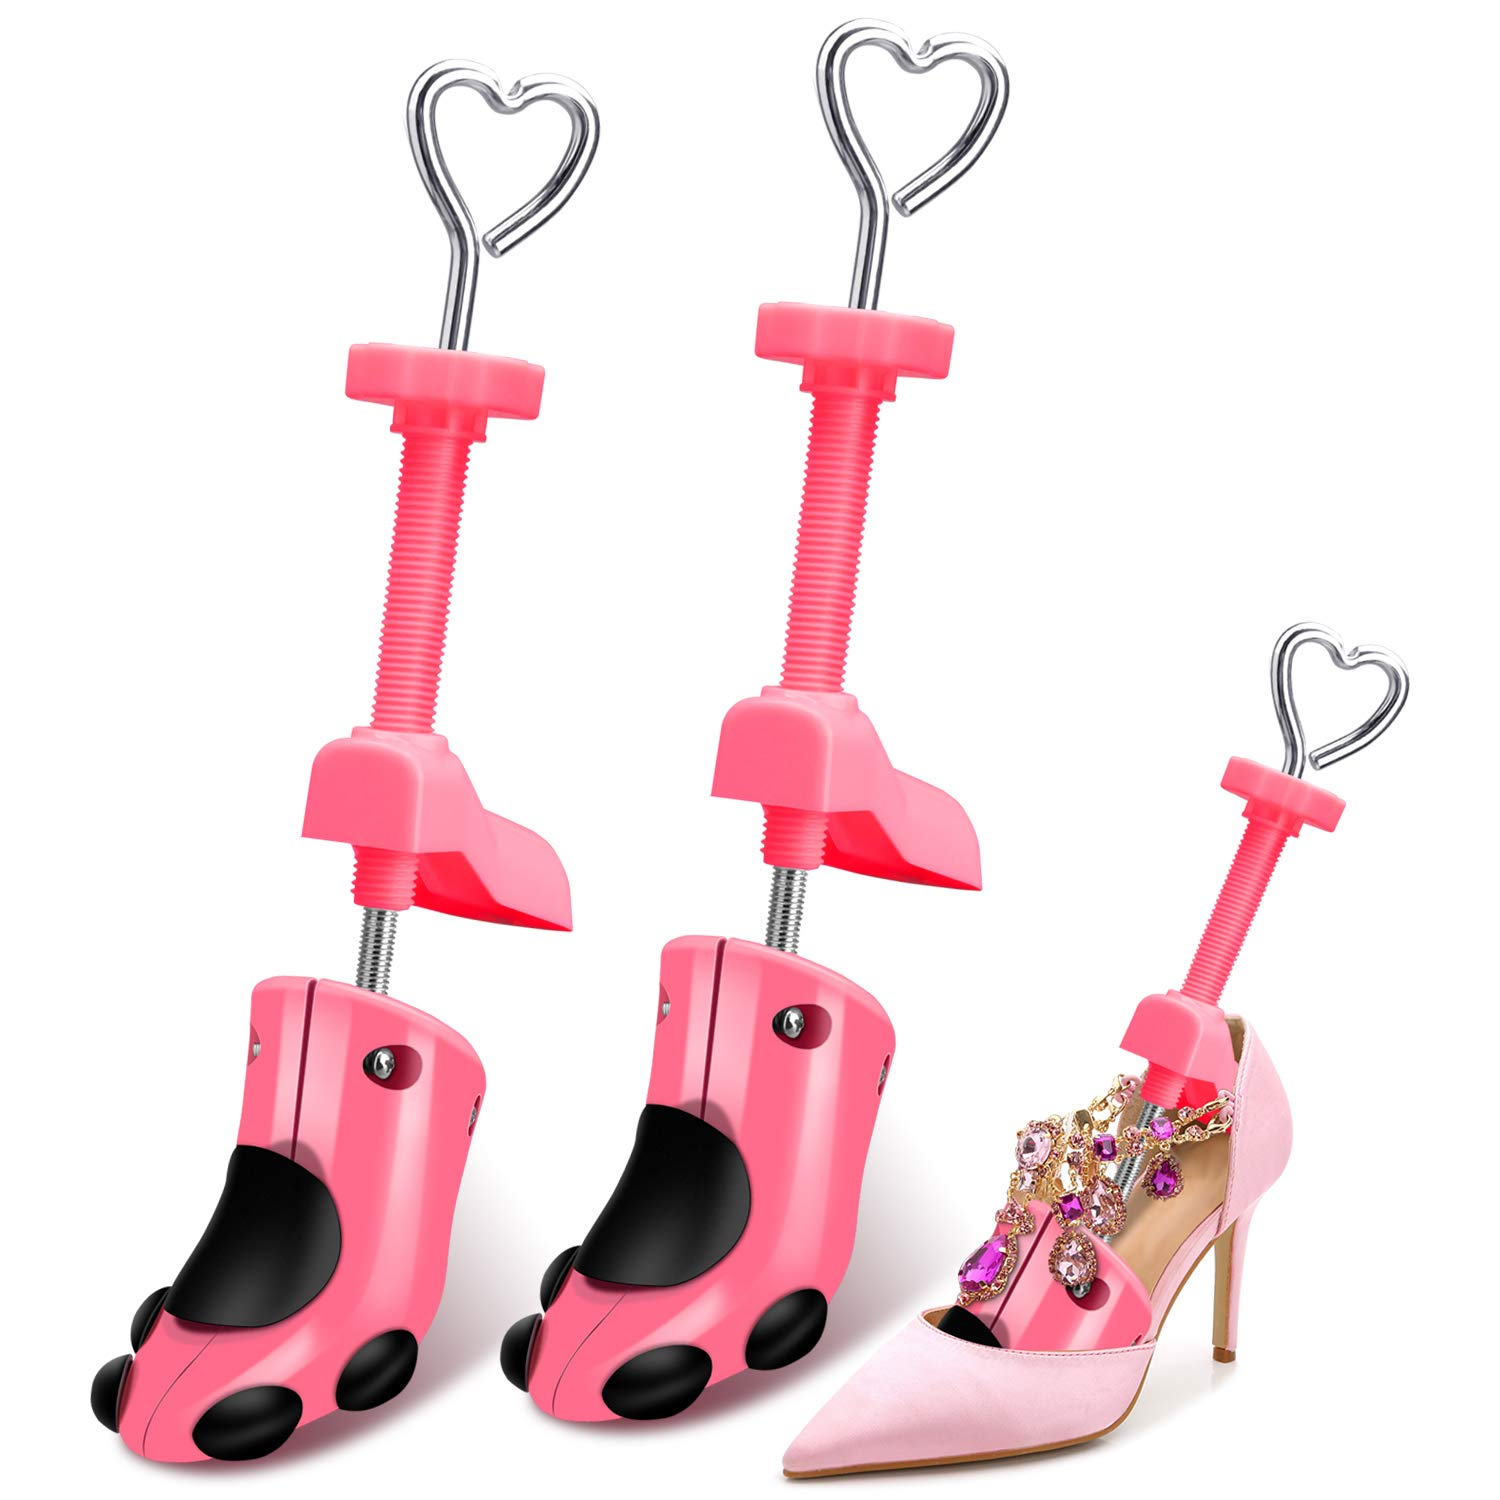 XYH Shoe Stretcher Women,womens high heel shoe stretcher Adjustable Length and Width Durable Shoe Shaper for Women (pink) by XYH